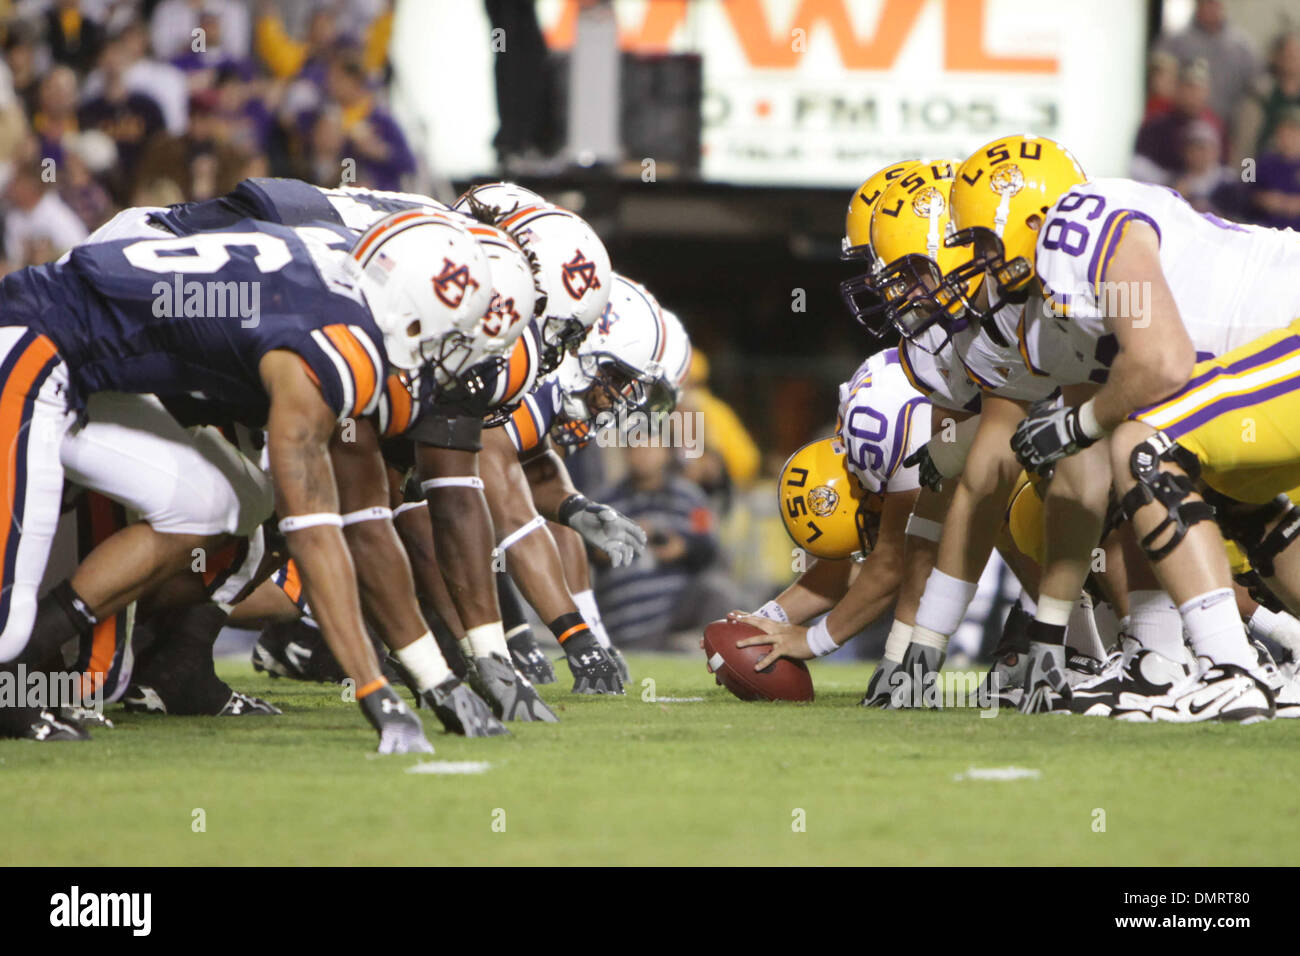 LSU and Auburn faceoff during the game between the Auburn Tigers and the LSU Tigers at Tiger Stadium in Baton Rouge, LA. (Credit Image: © Matt Lange/Southcreek Global/ZUMApress.com) - Stock Image